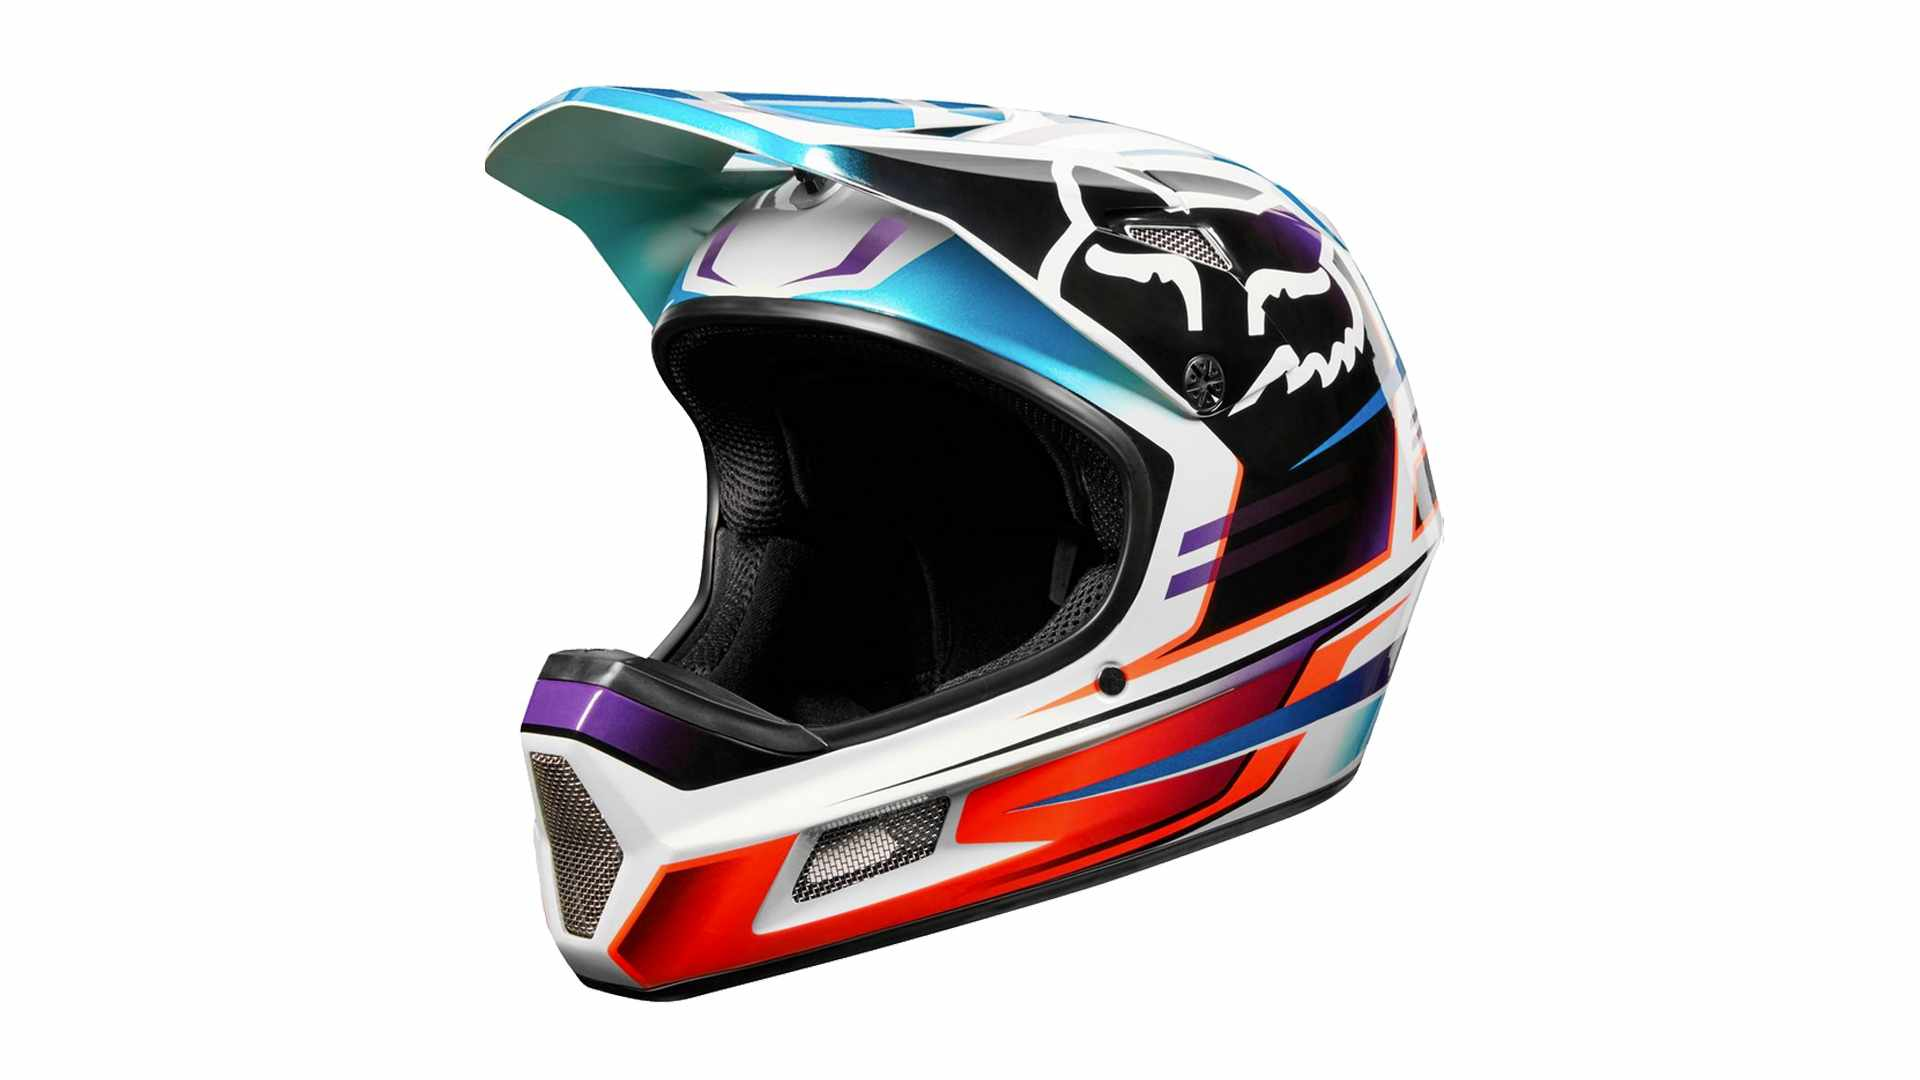 A colourfull full-face mountain bike helmet on a white background